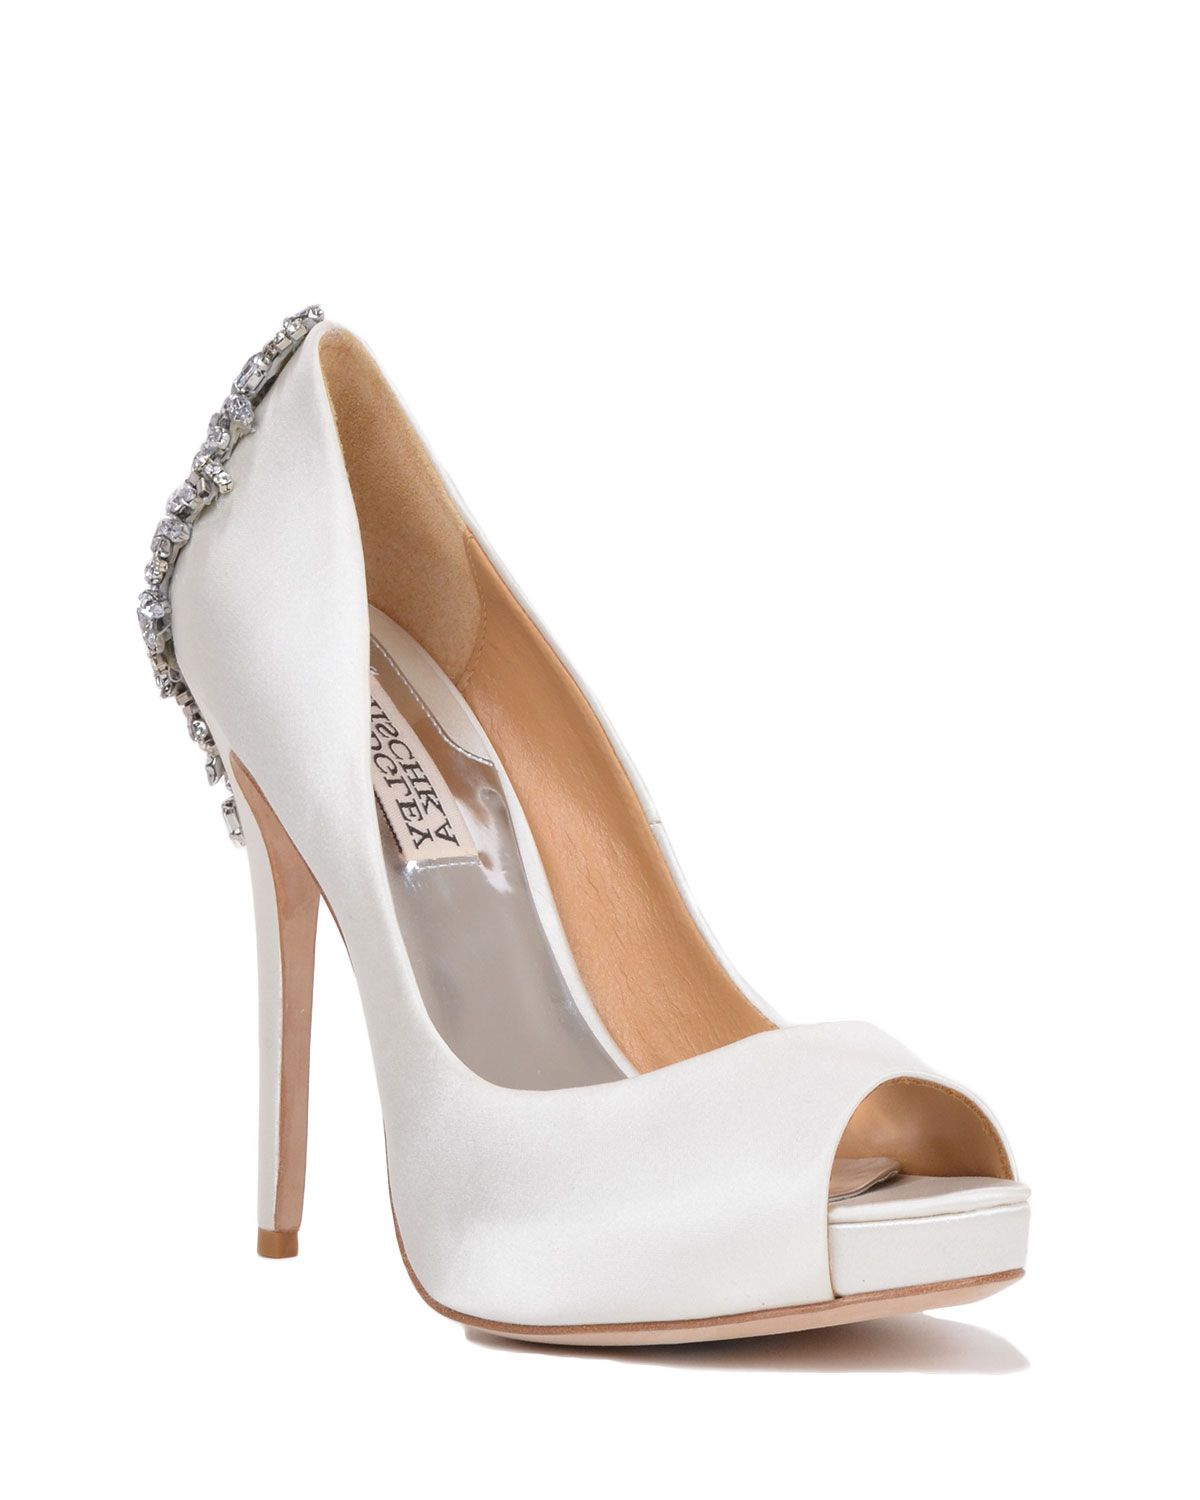 Badgley Mischka Kiara Embellished Peep Toe Evening Pumps